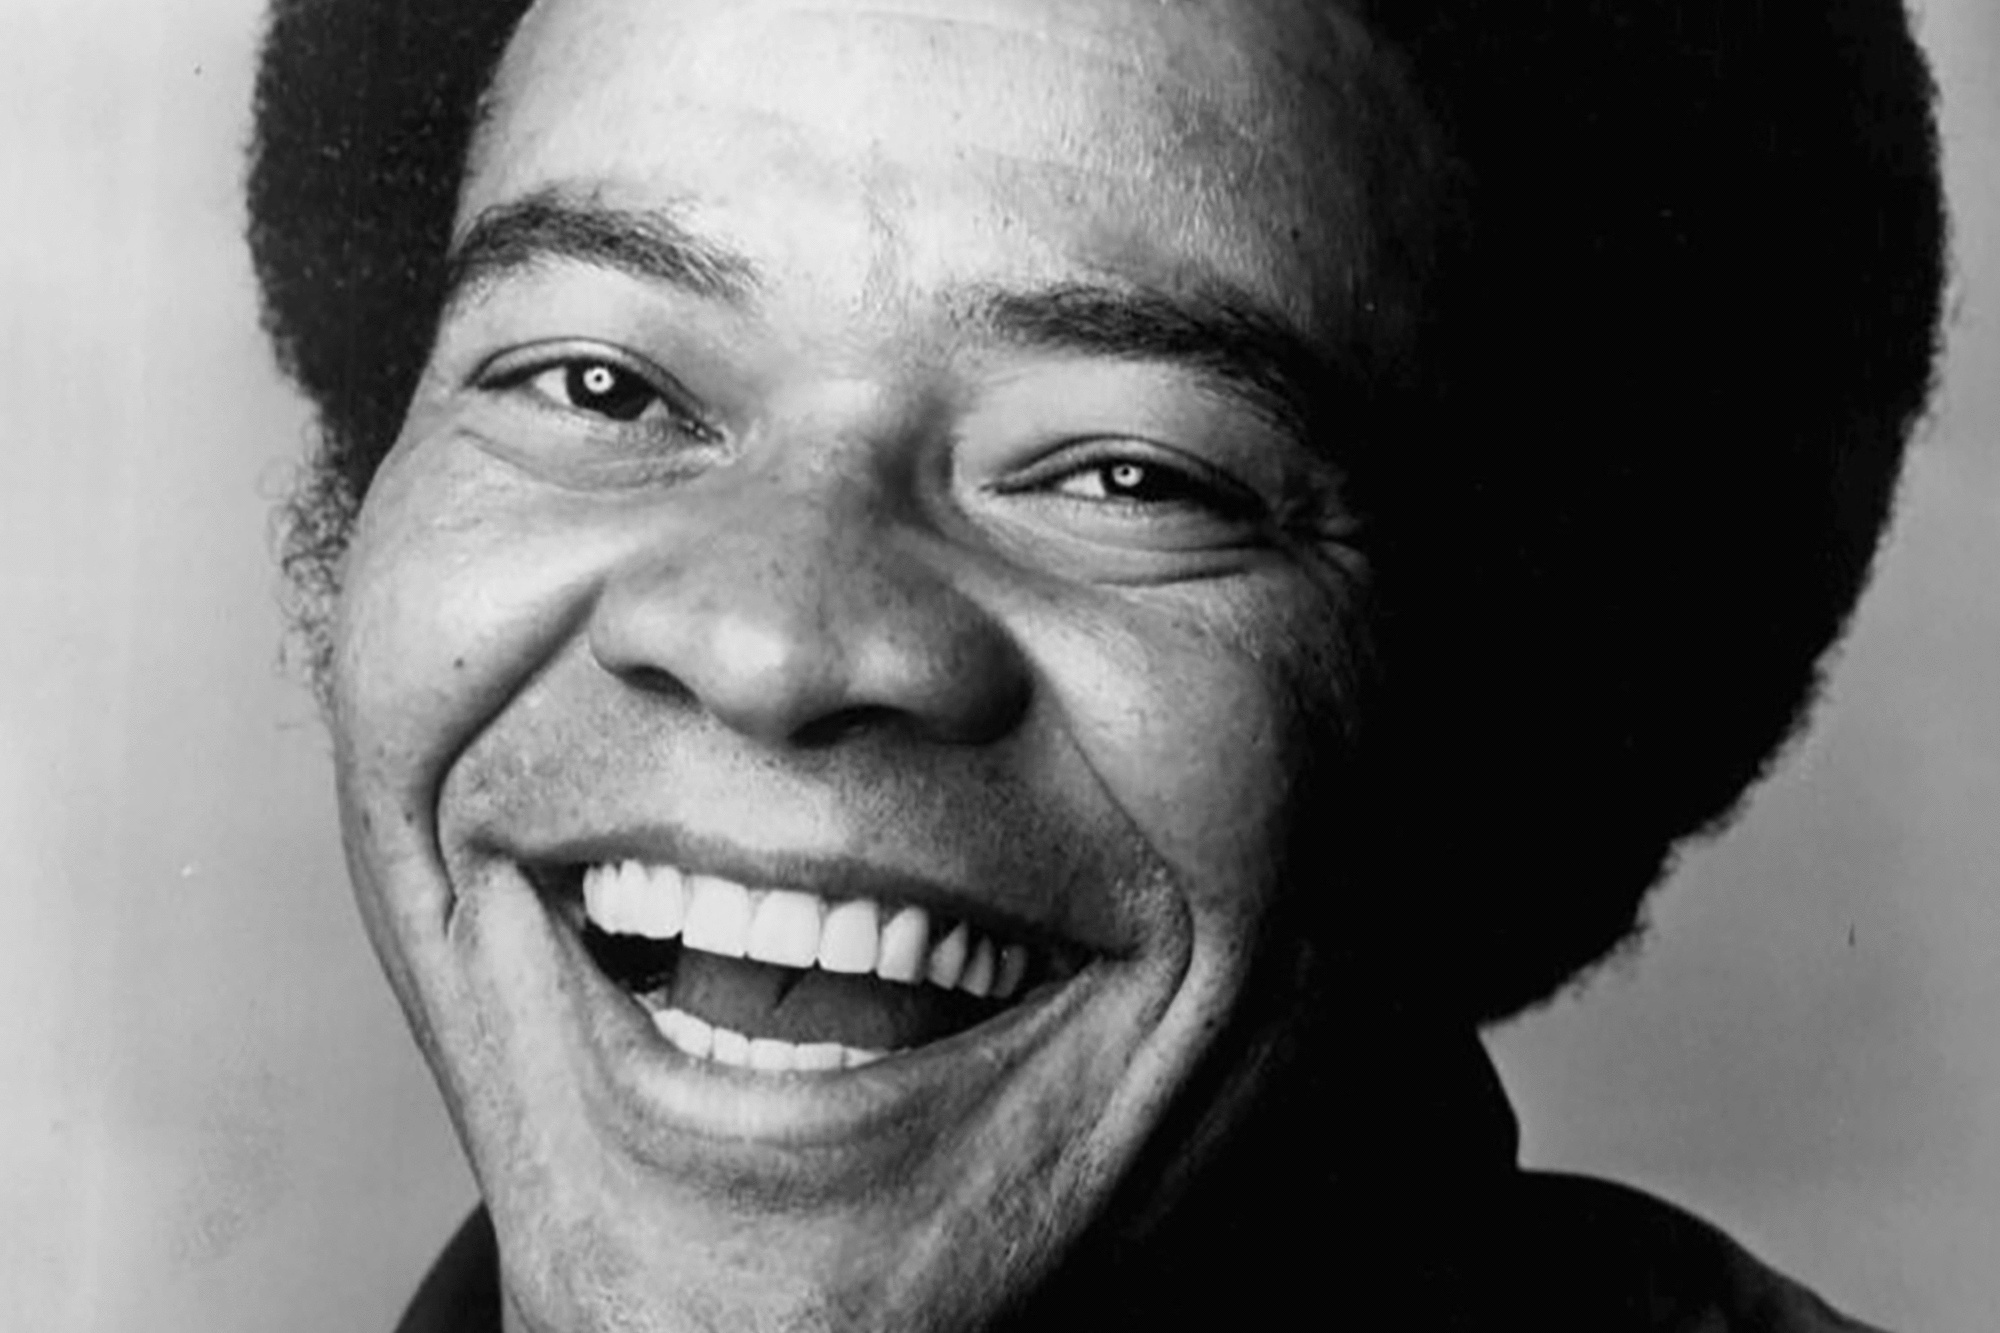 Live at Carnegie Hall  Captures Bill Withers at His Grittiest and Most Introspective